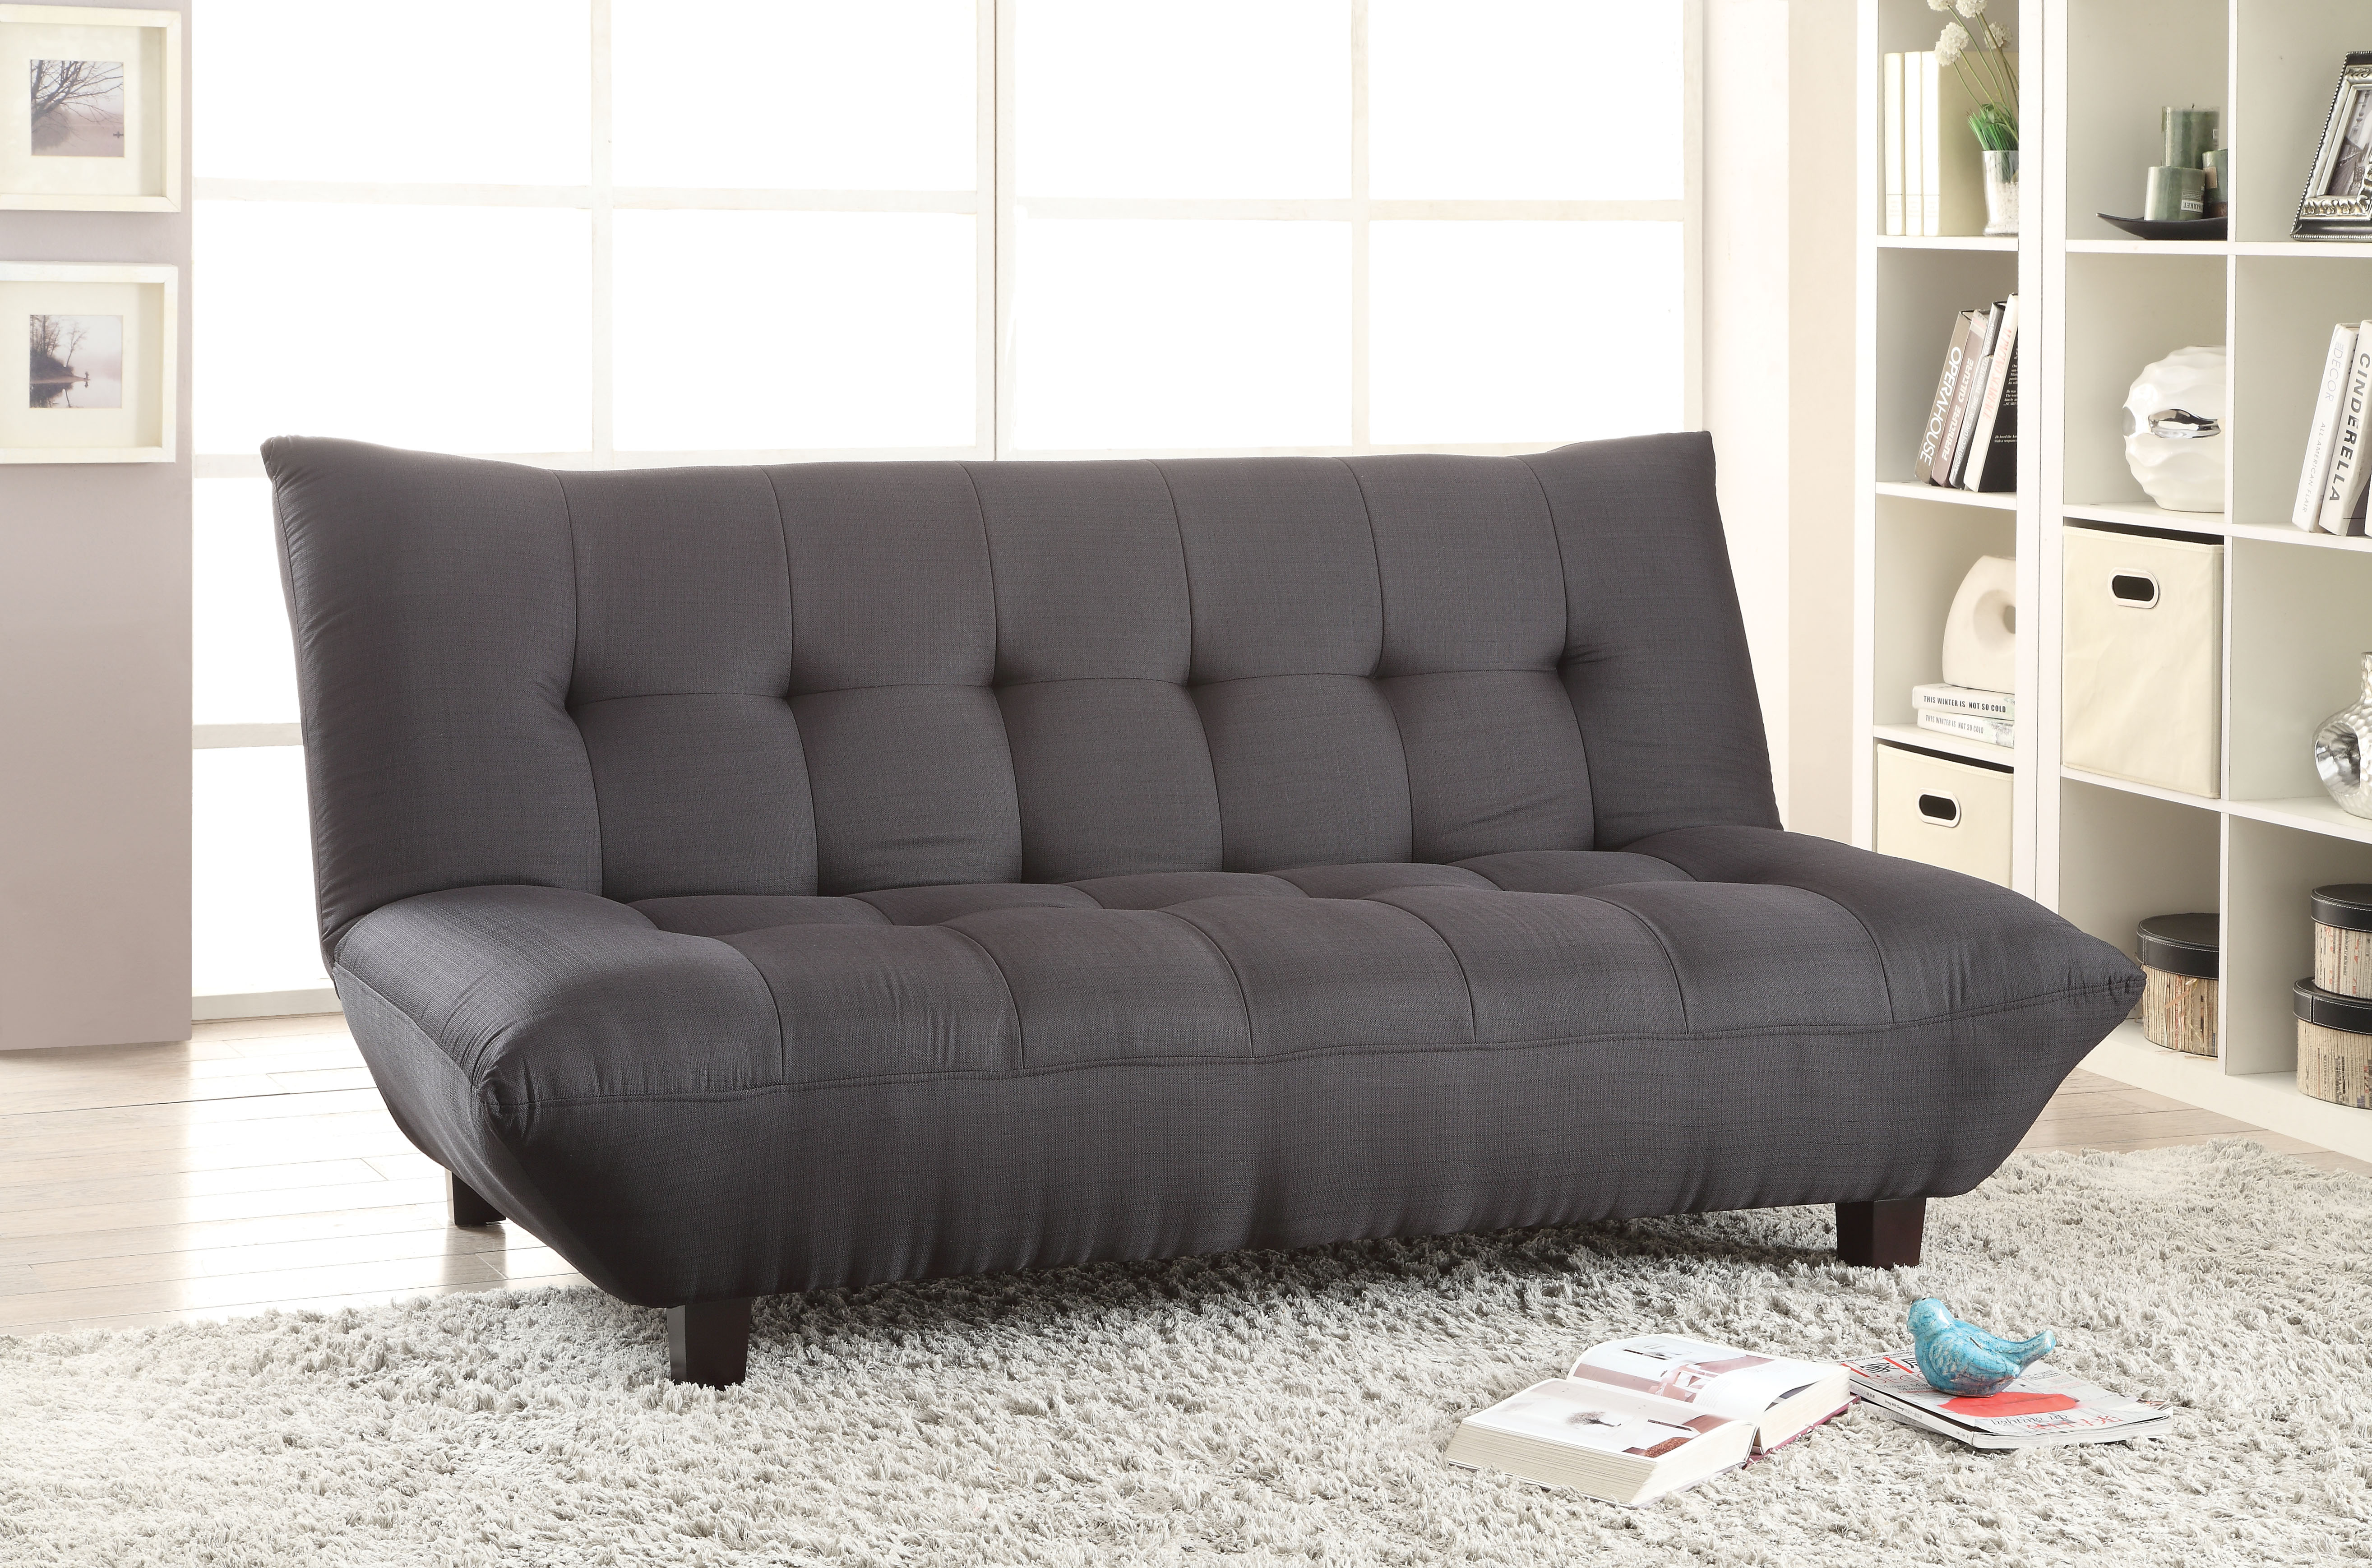 Dimensional Outlet Furniture